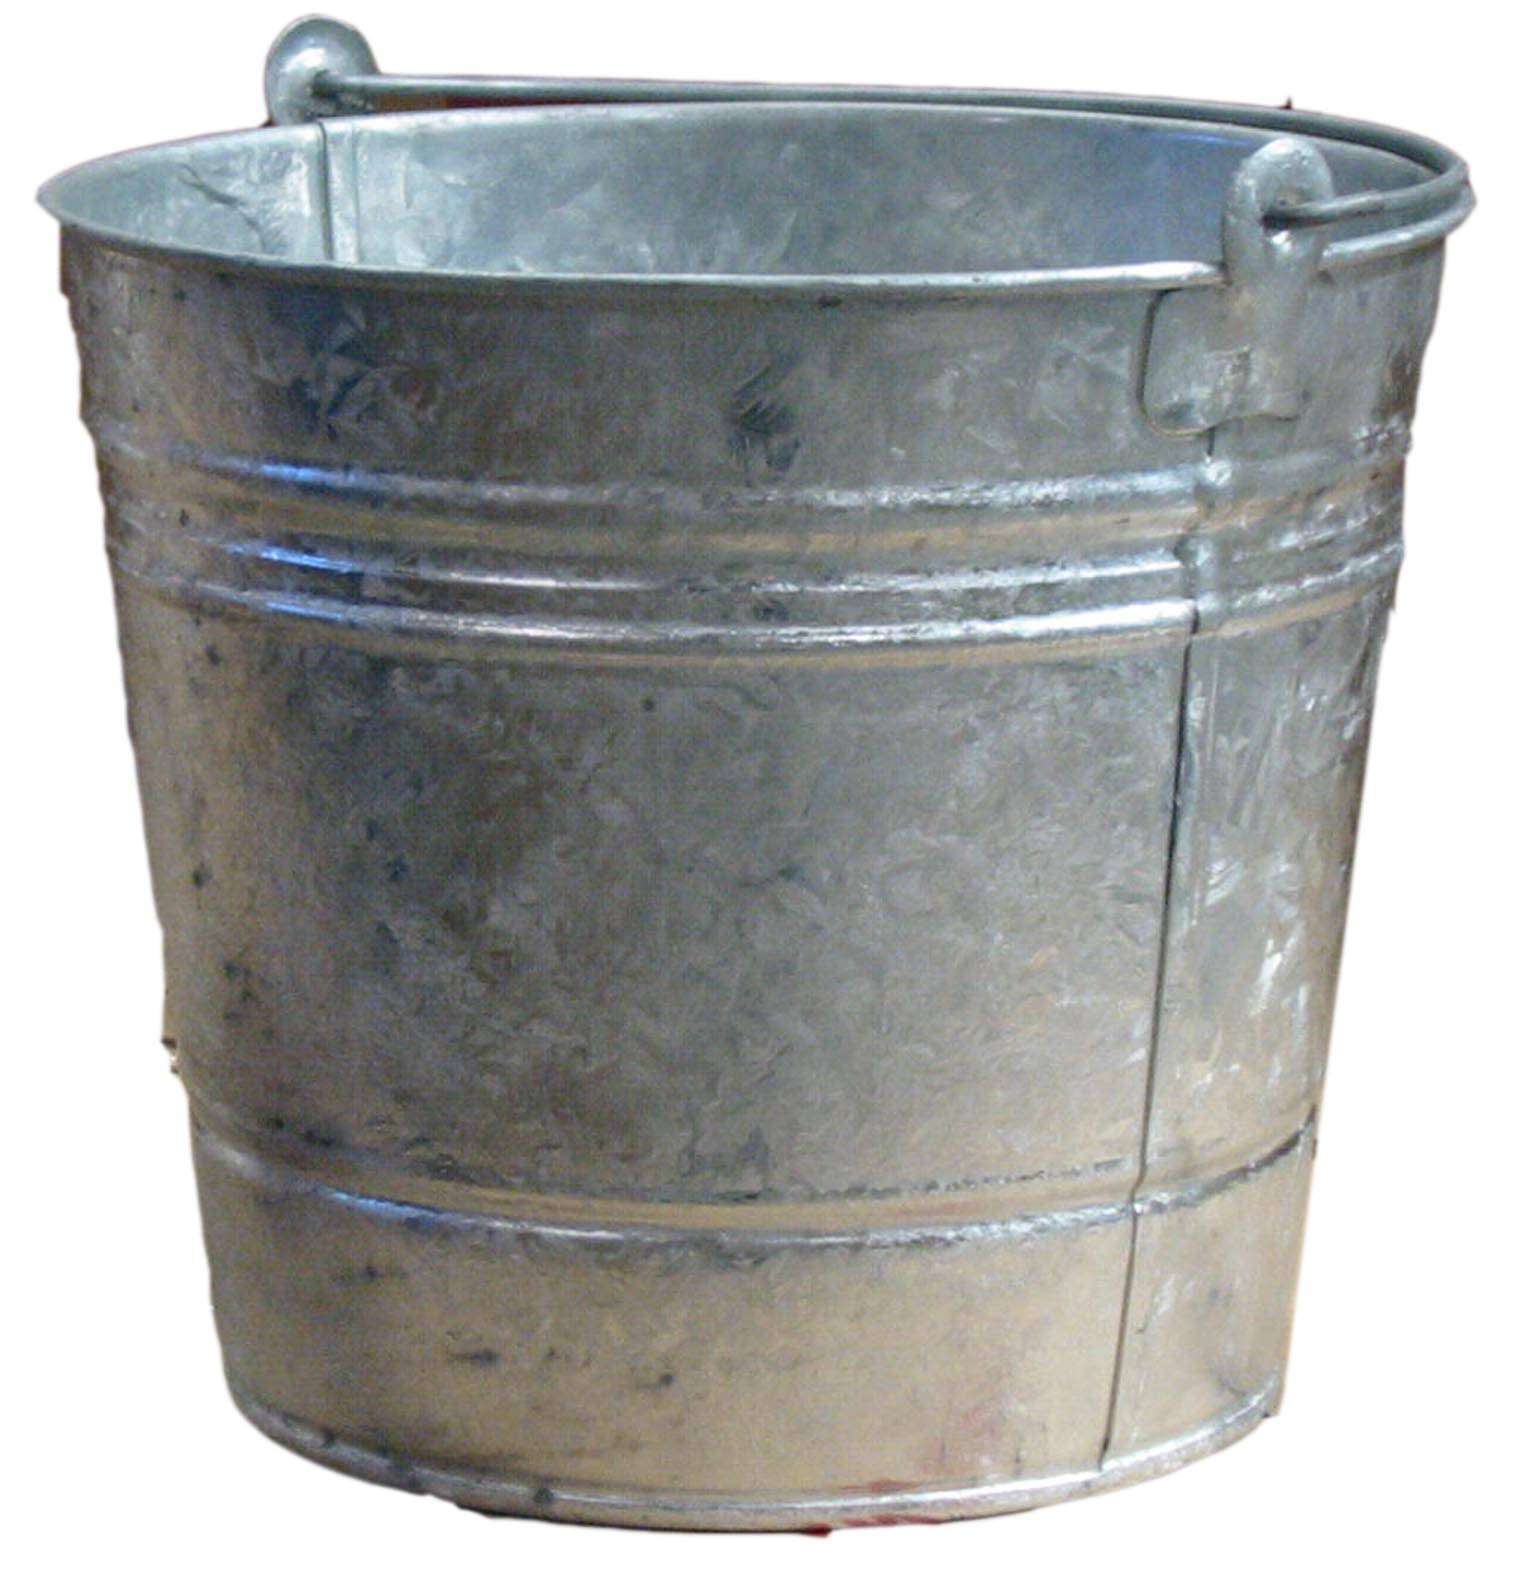 wholesale galvanized trash cans lids and buckets